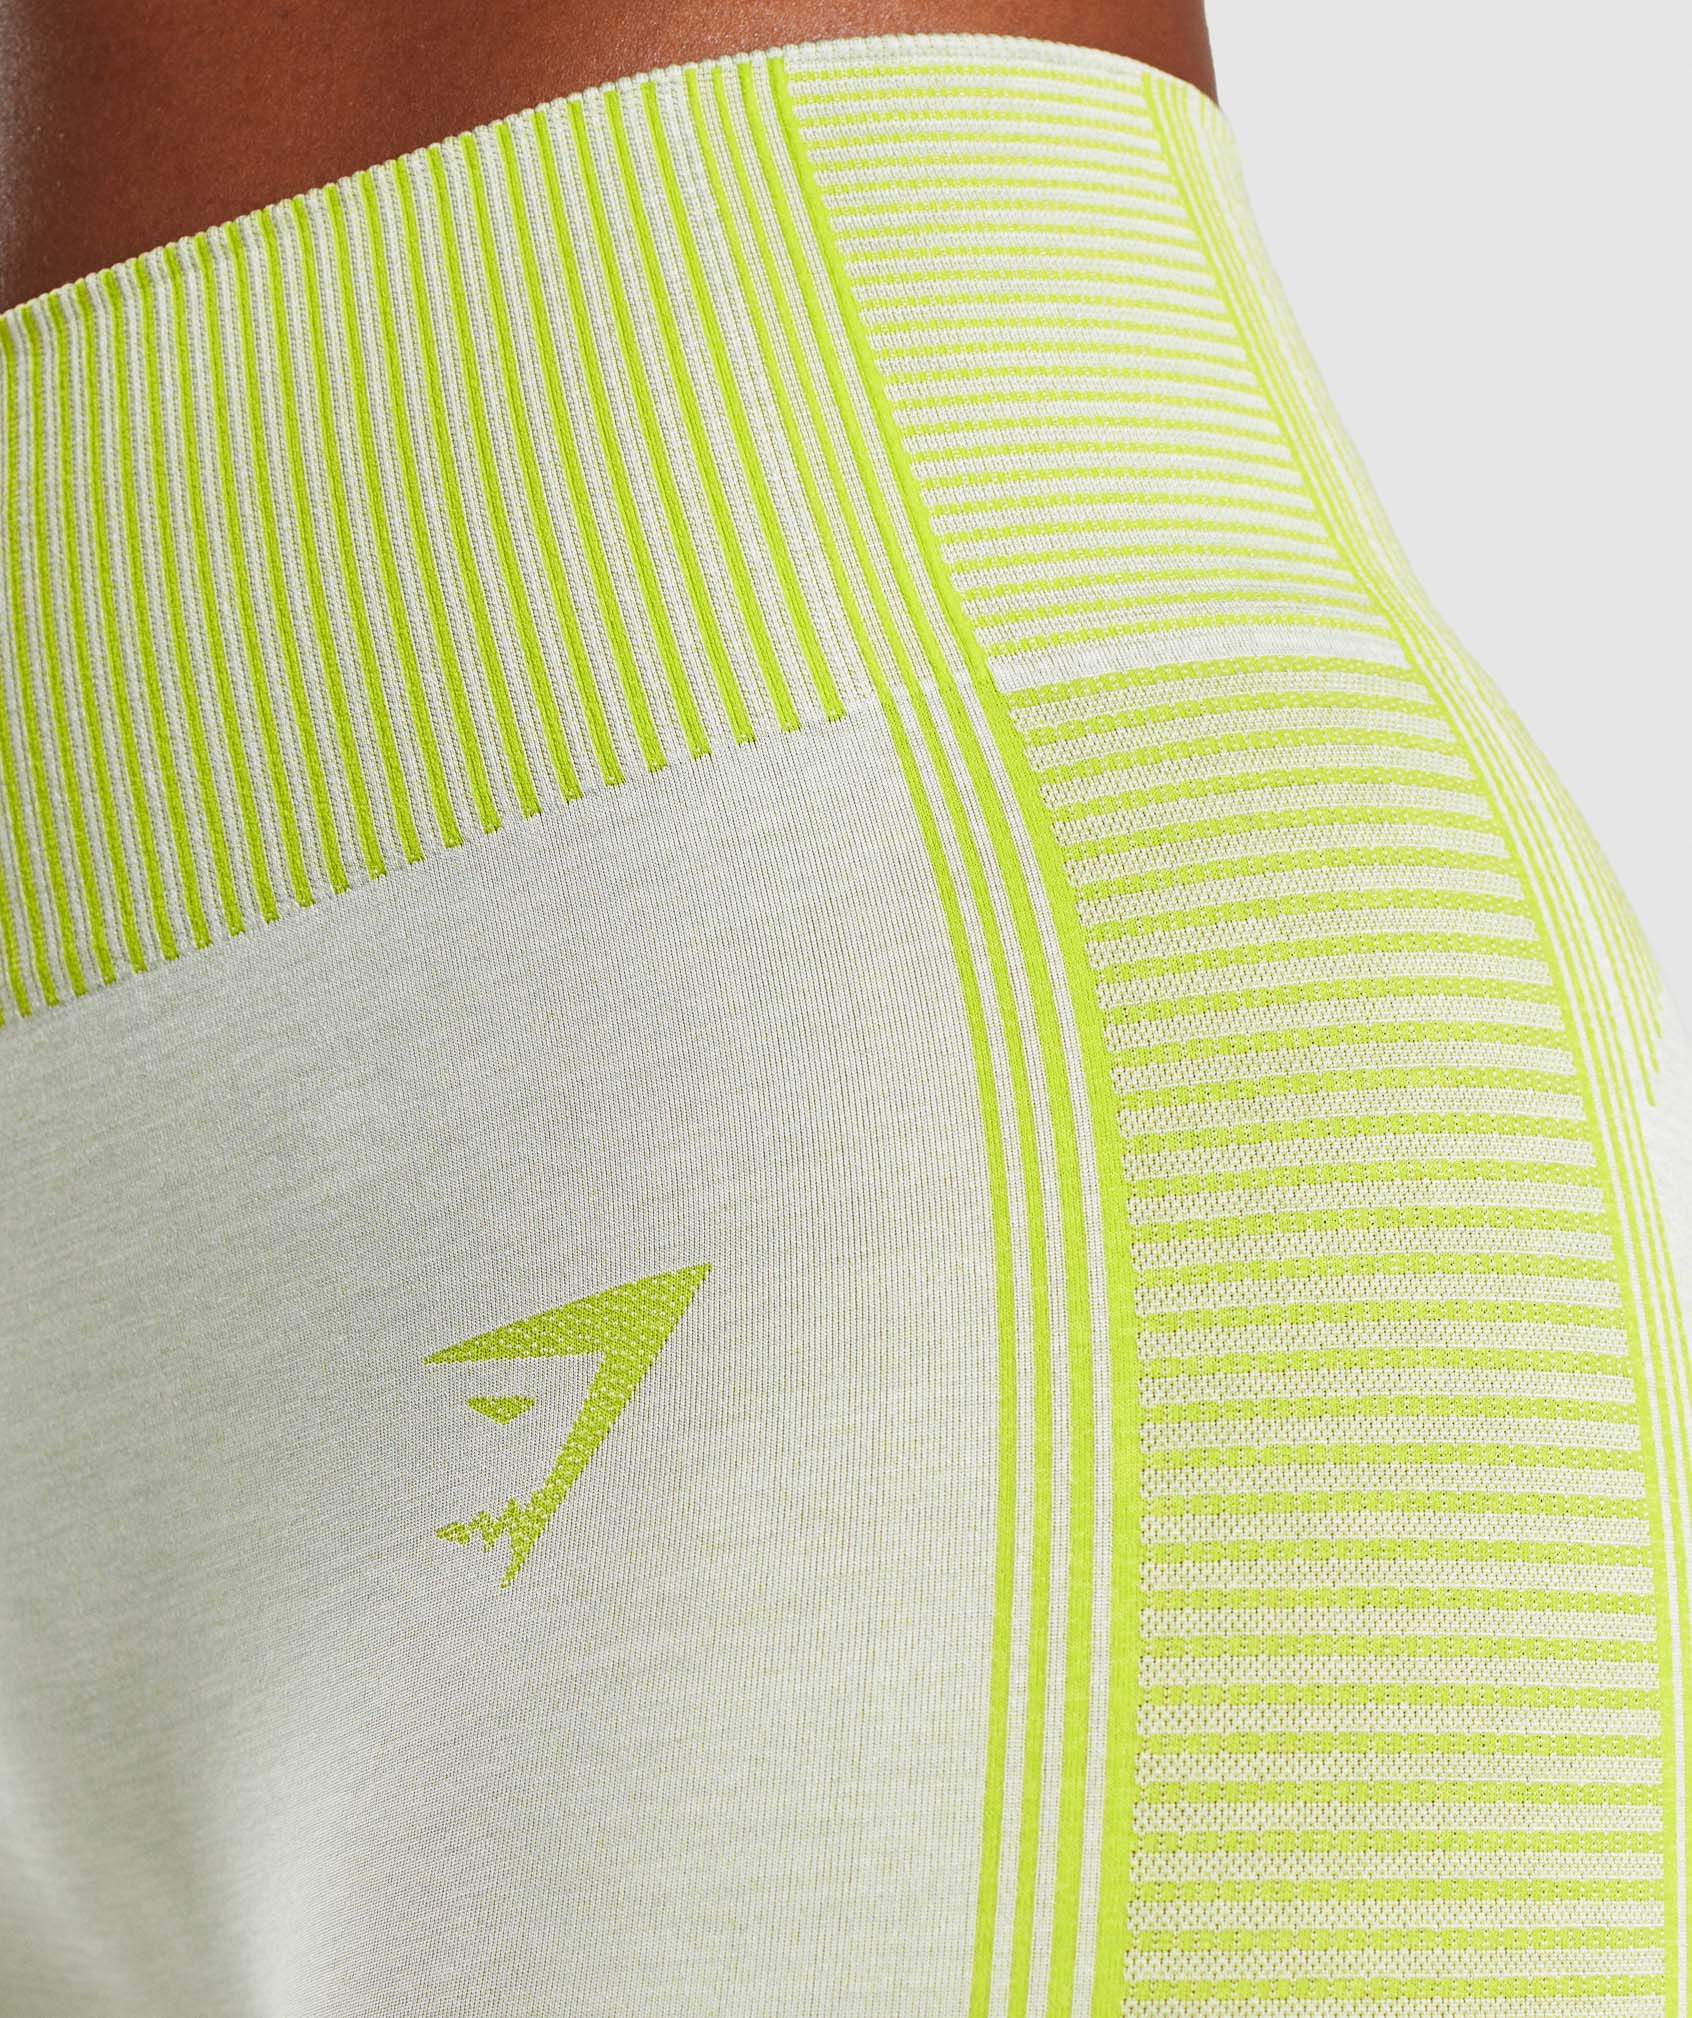 Classier: Buy Gymshark Hyper Amplify Leggings - Light Grey Marl/Lime - Gymshark